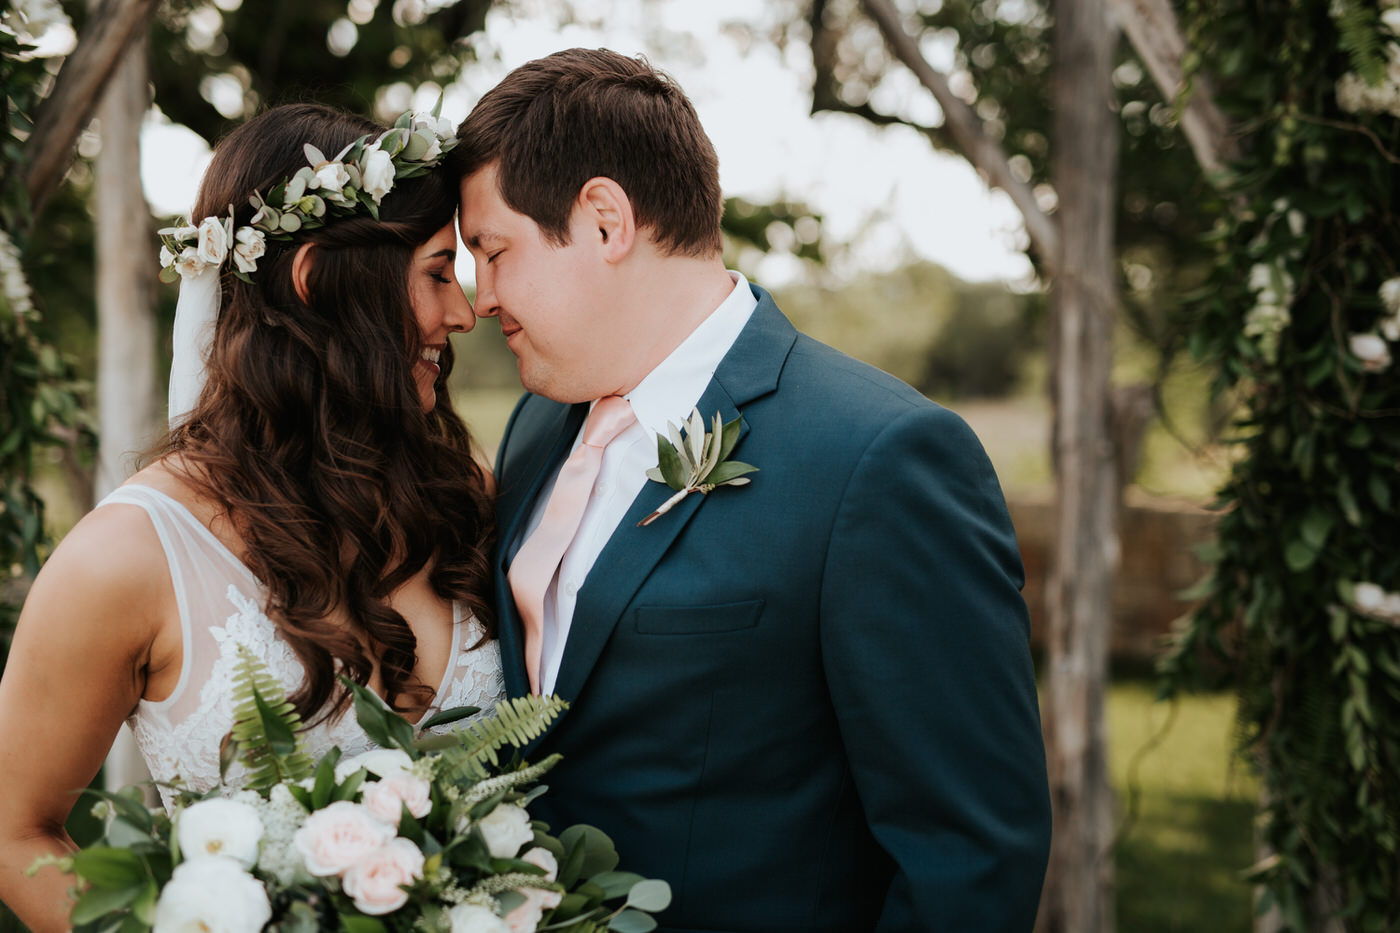 Bride and groom at Thurman's Mansion wedding